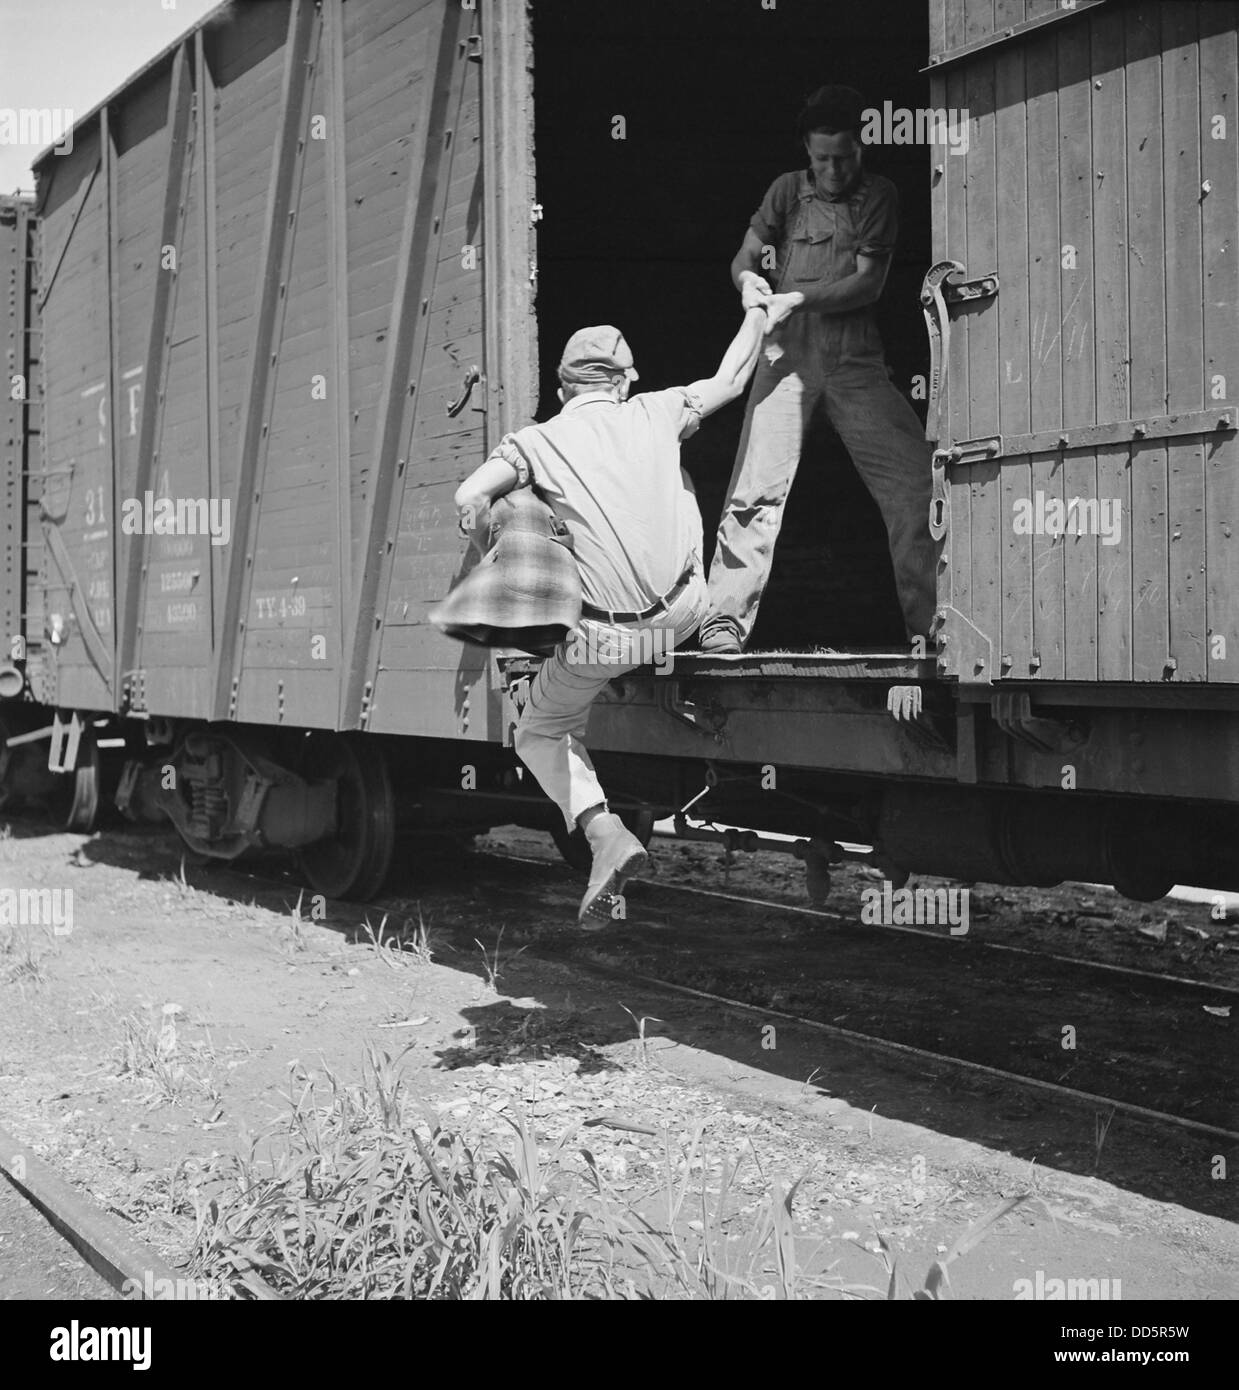 Helping a man hop a freight at Bakersfield, California, 1930s. (BSLOC_2013_8_196) - Stock Image